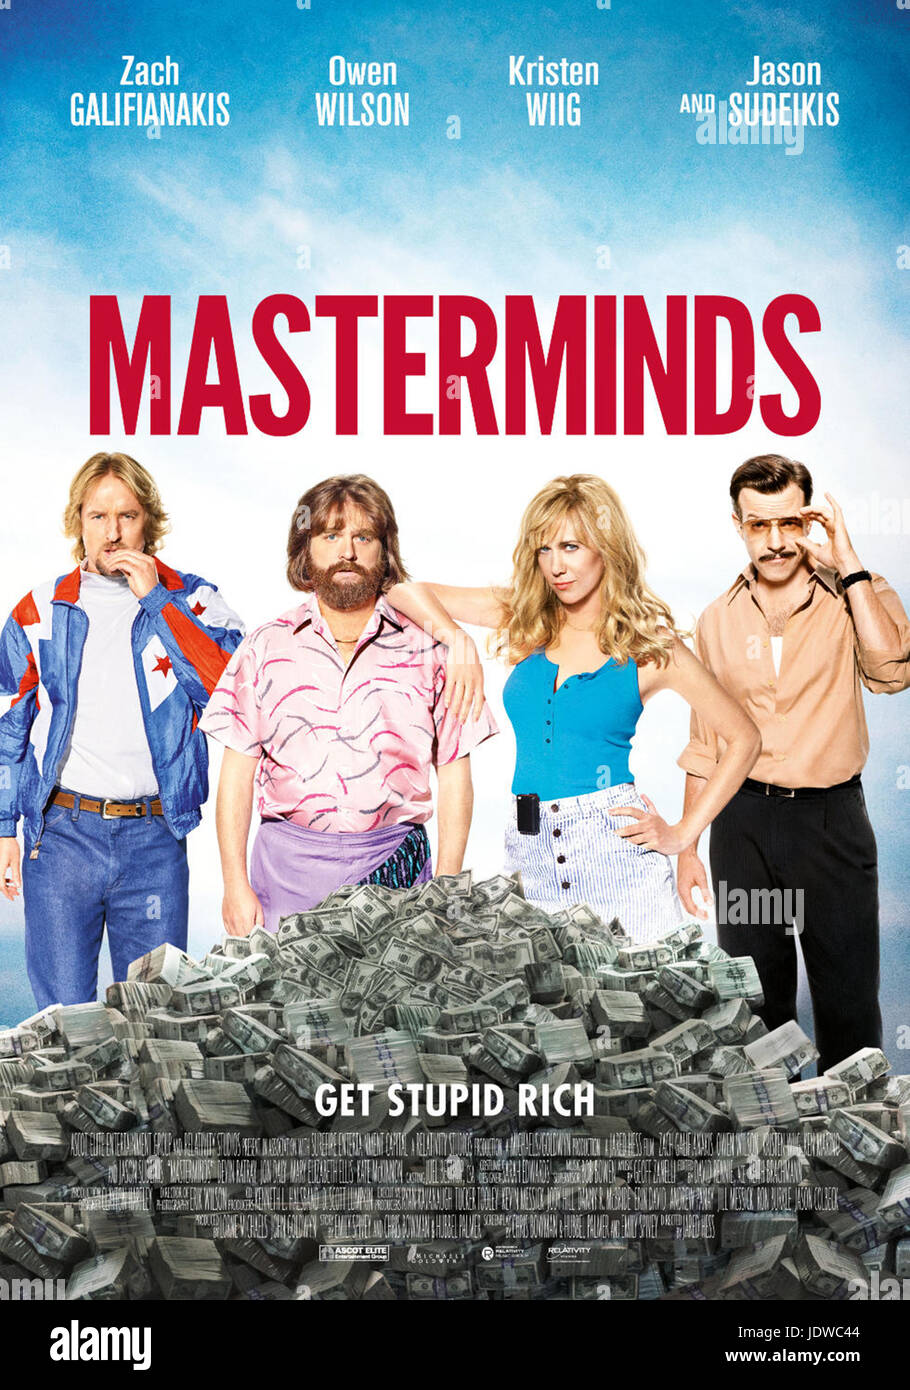 MASTERMINDS (2016)  JARED HESS (DIR)  RELATIVITY MEDIA/MOVIESTORE COLLECTION LTD - Stock Image